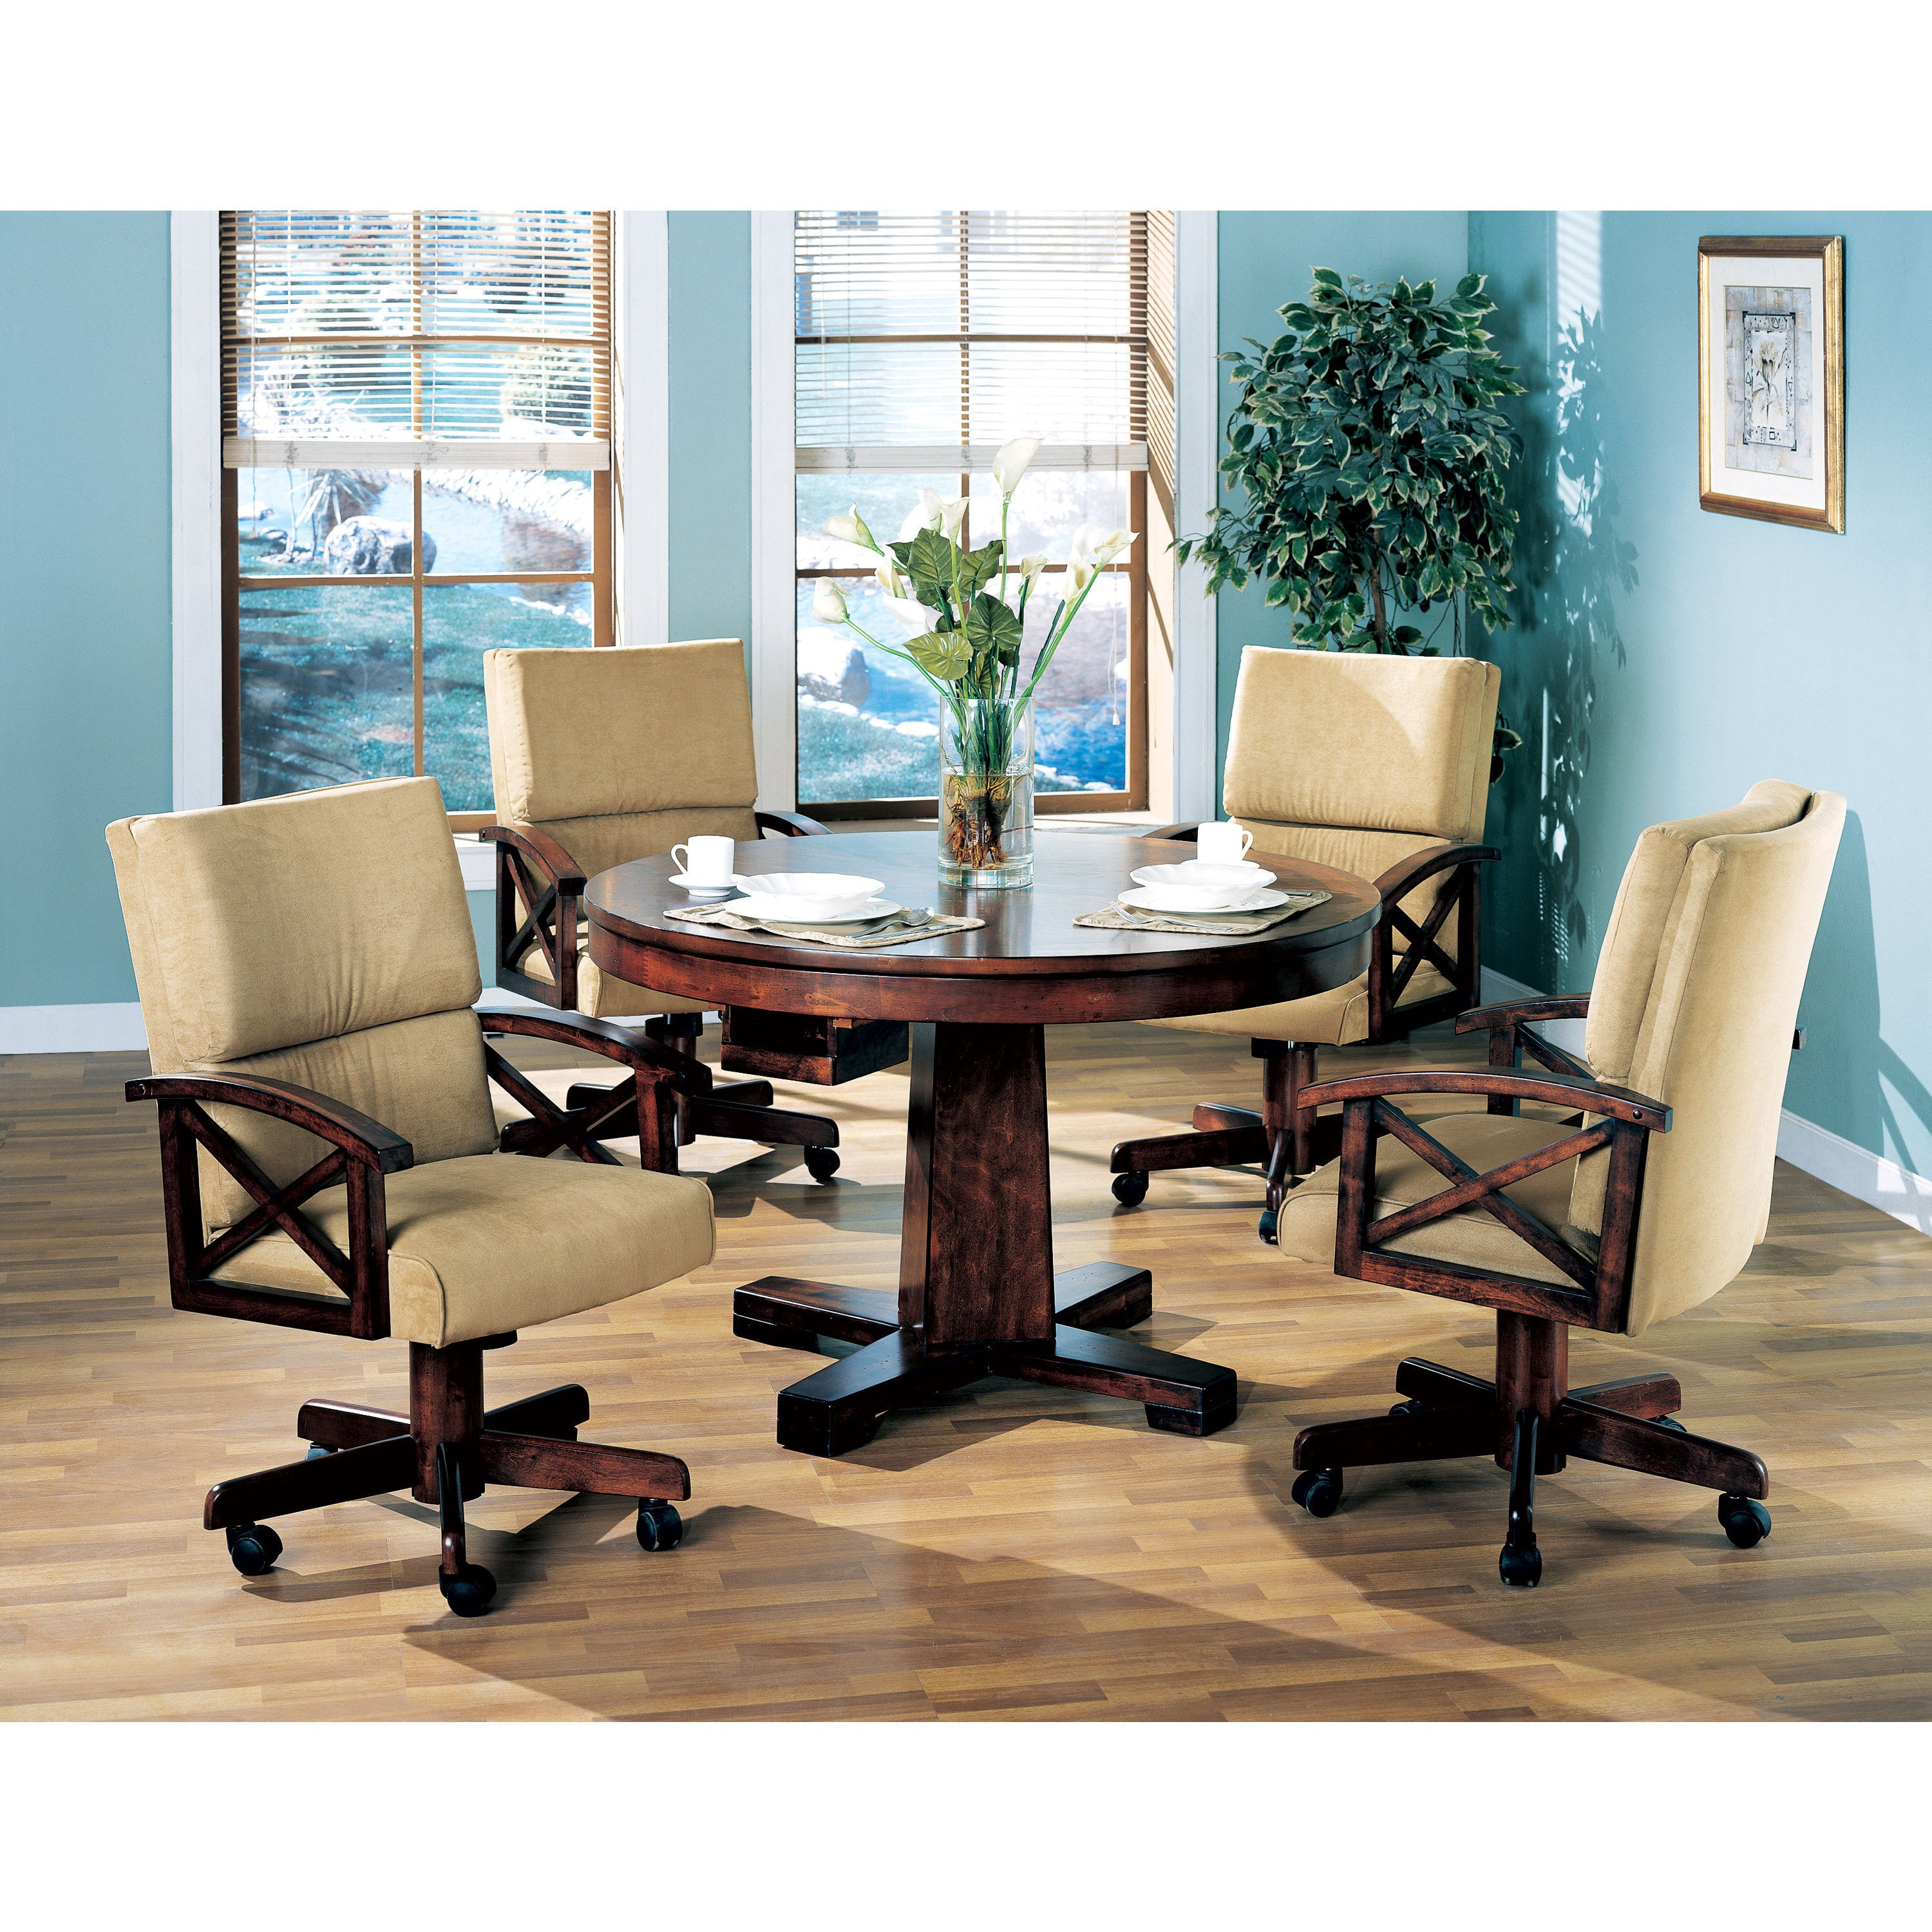 Coaster Furniture Oak Convertible Dining and Game Table (...